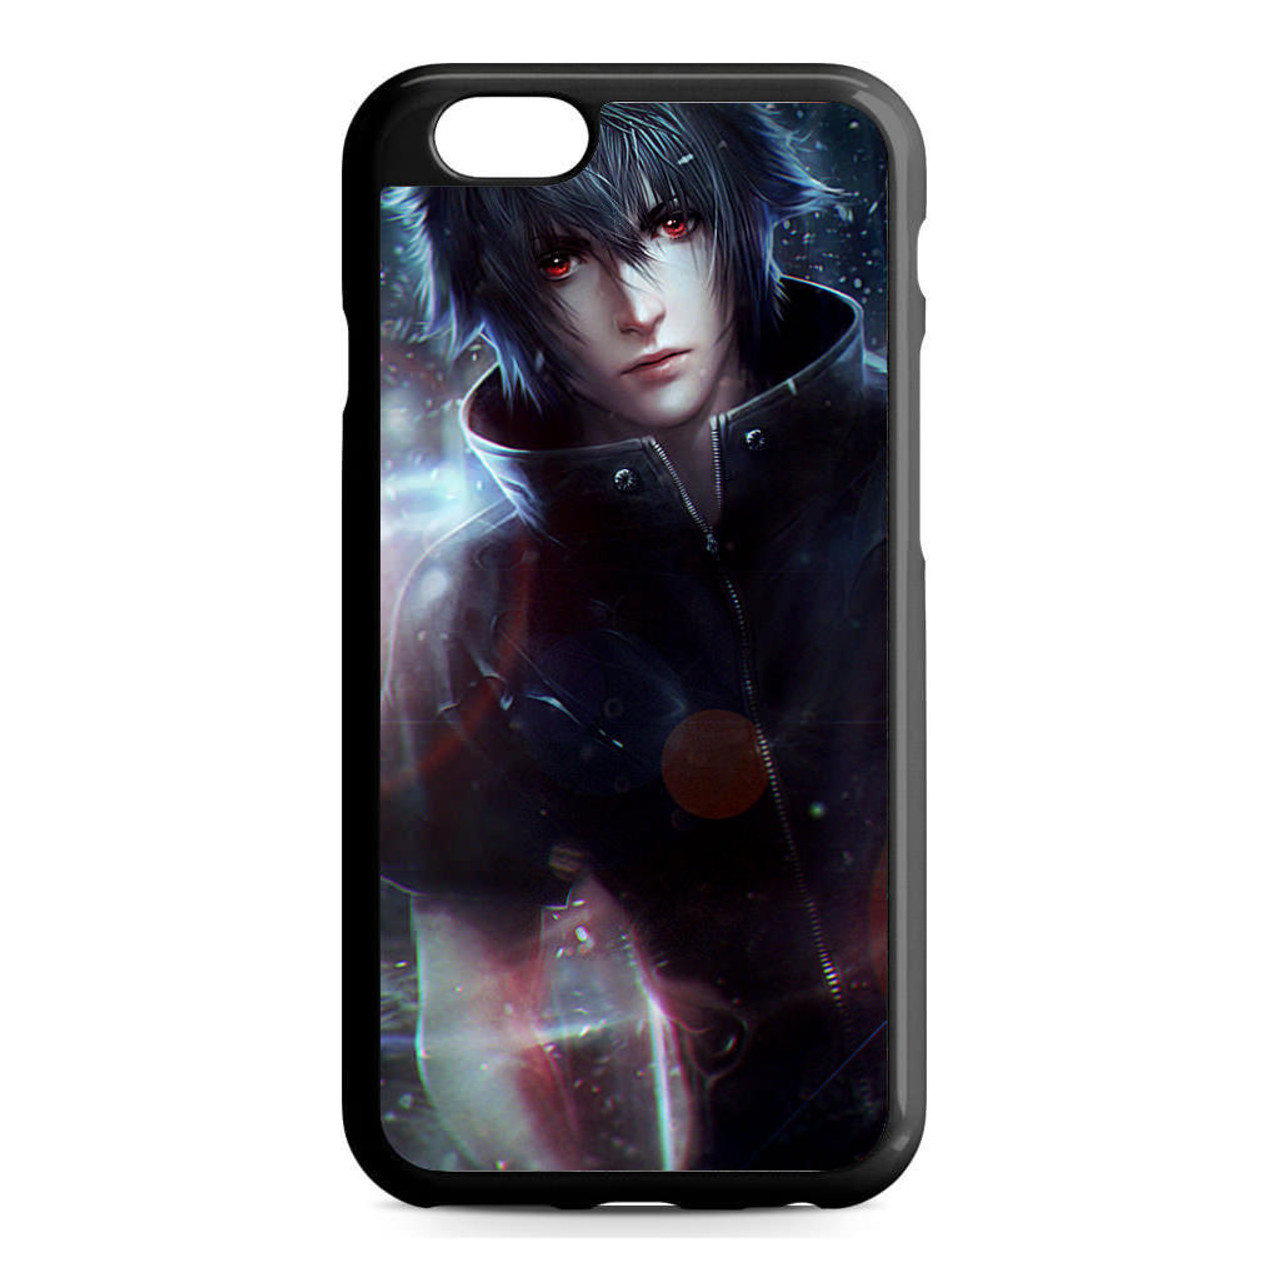 iphone 6 case final fantasy